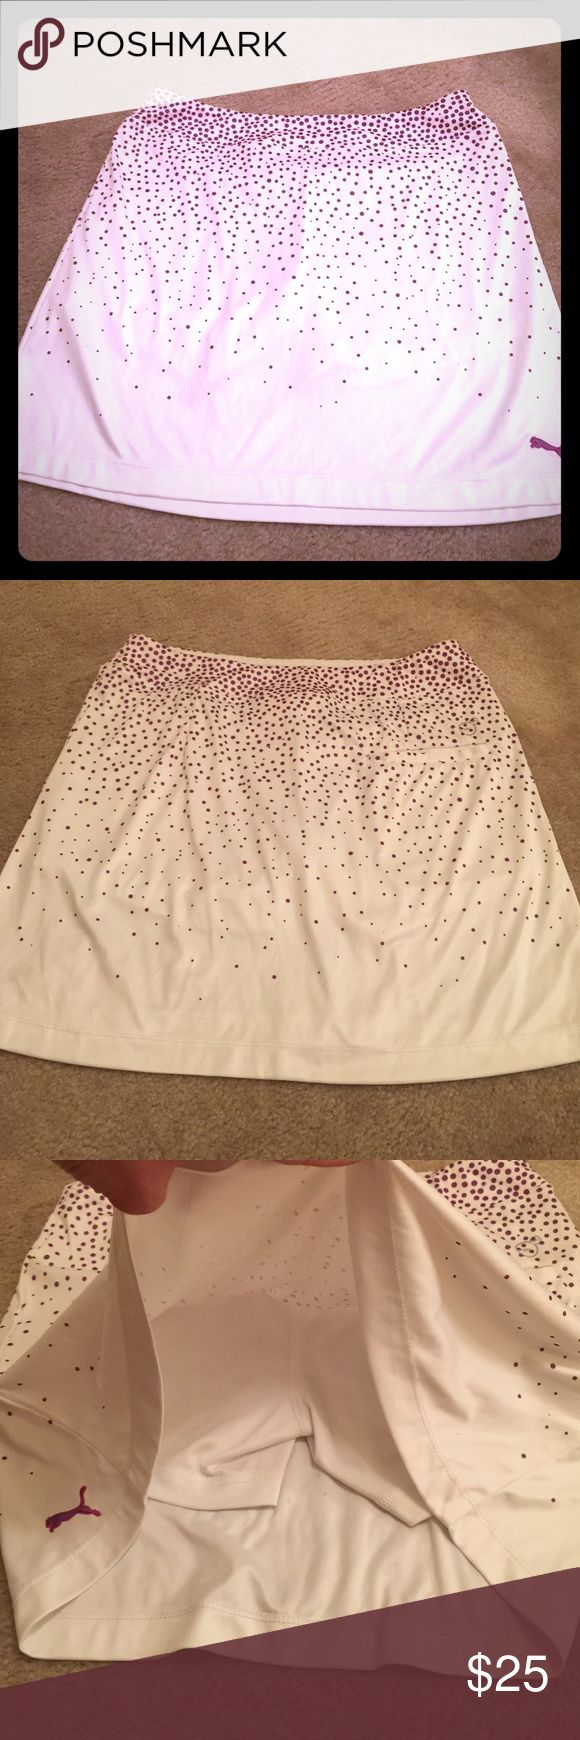 Puma golf skirt Golf skirt with built in shorts. Mostly white with purple dot design. 100% polyester. One pocket on the right butt cheek. Great condition, like new! Puma Skirts Midi